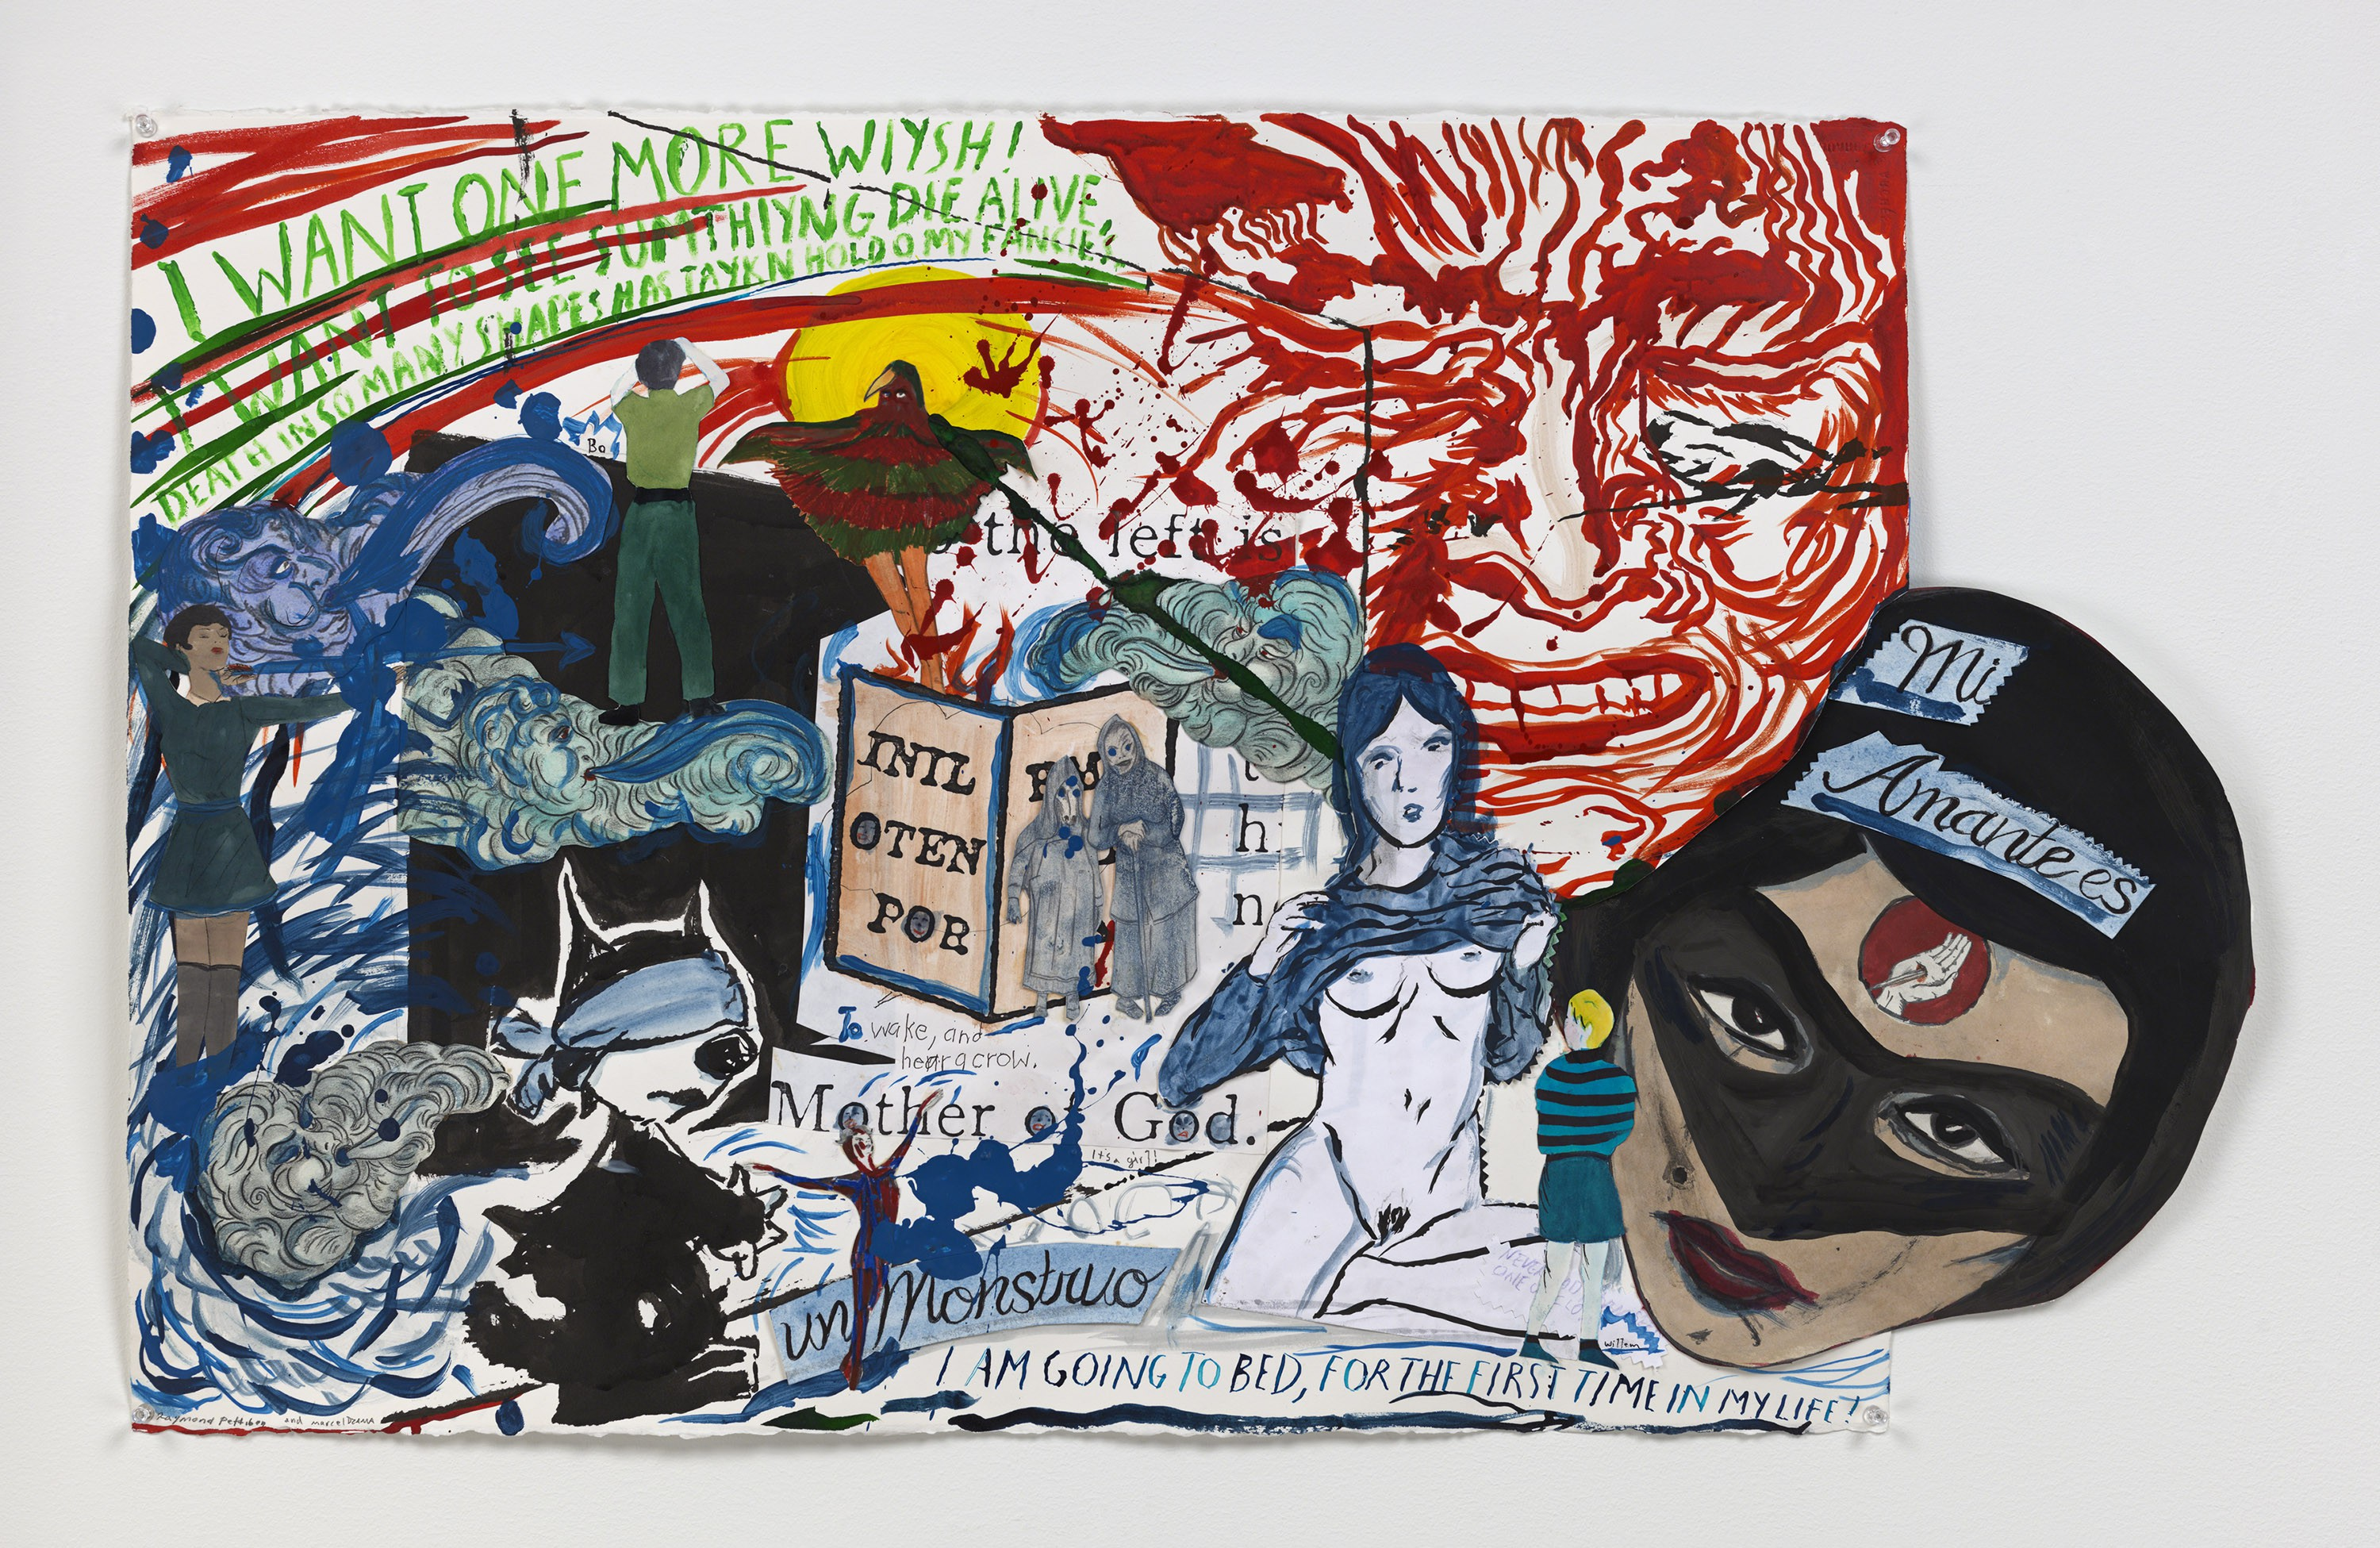 Marcel Dzama and Raymond Pettibon Mother of God, it's a girl, 2016, Courtesy David Zwirner, New York/London